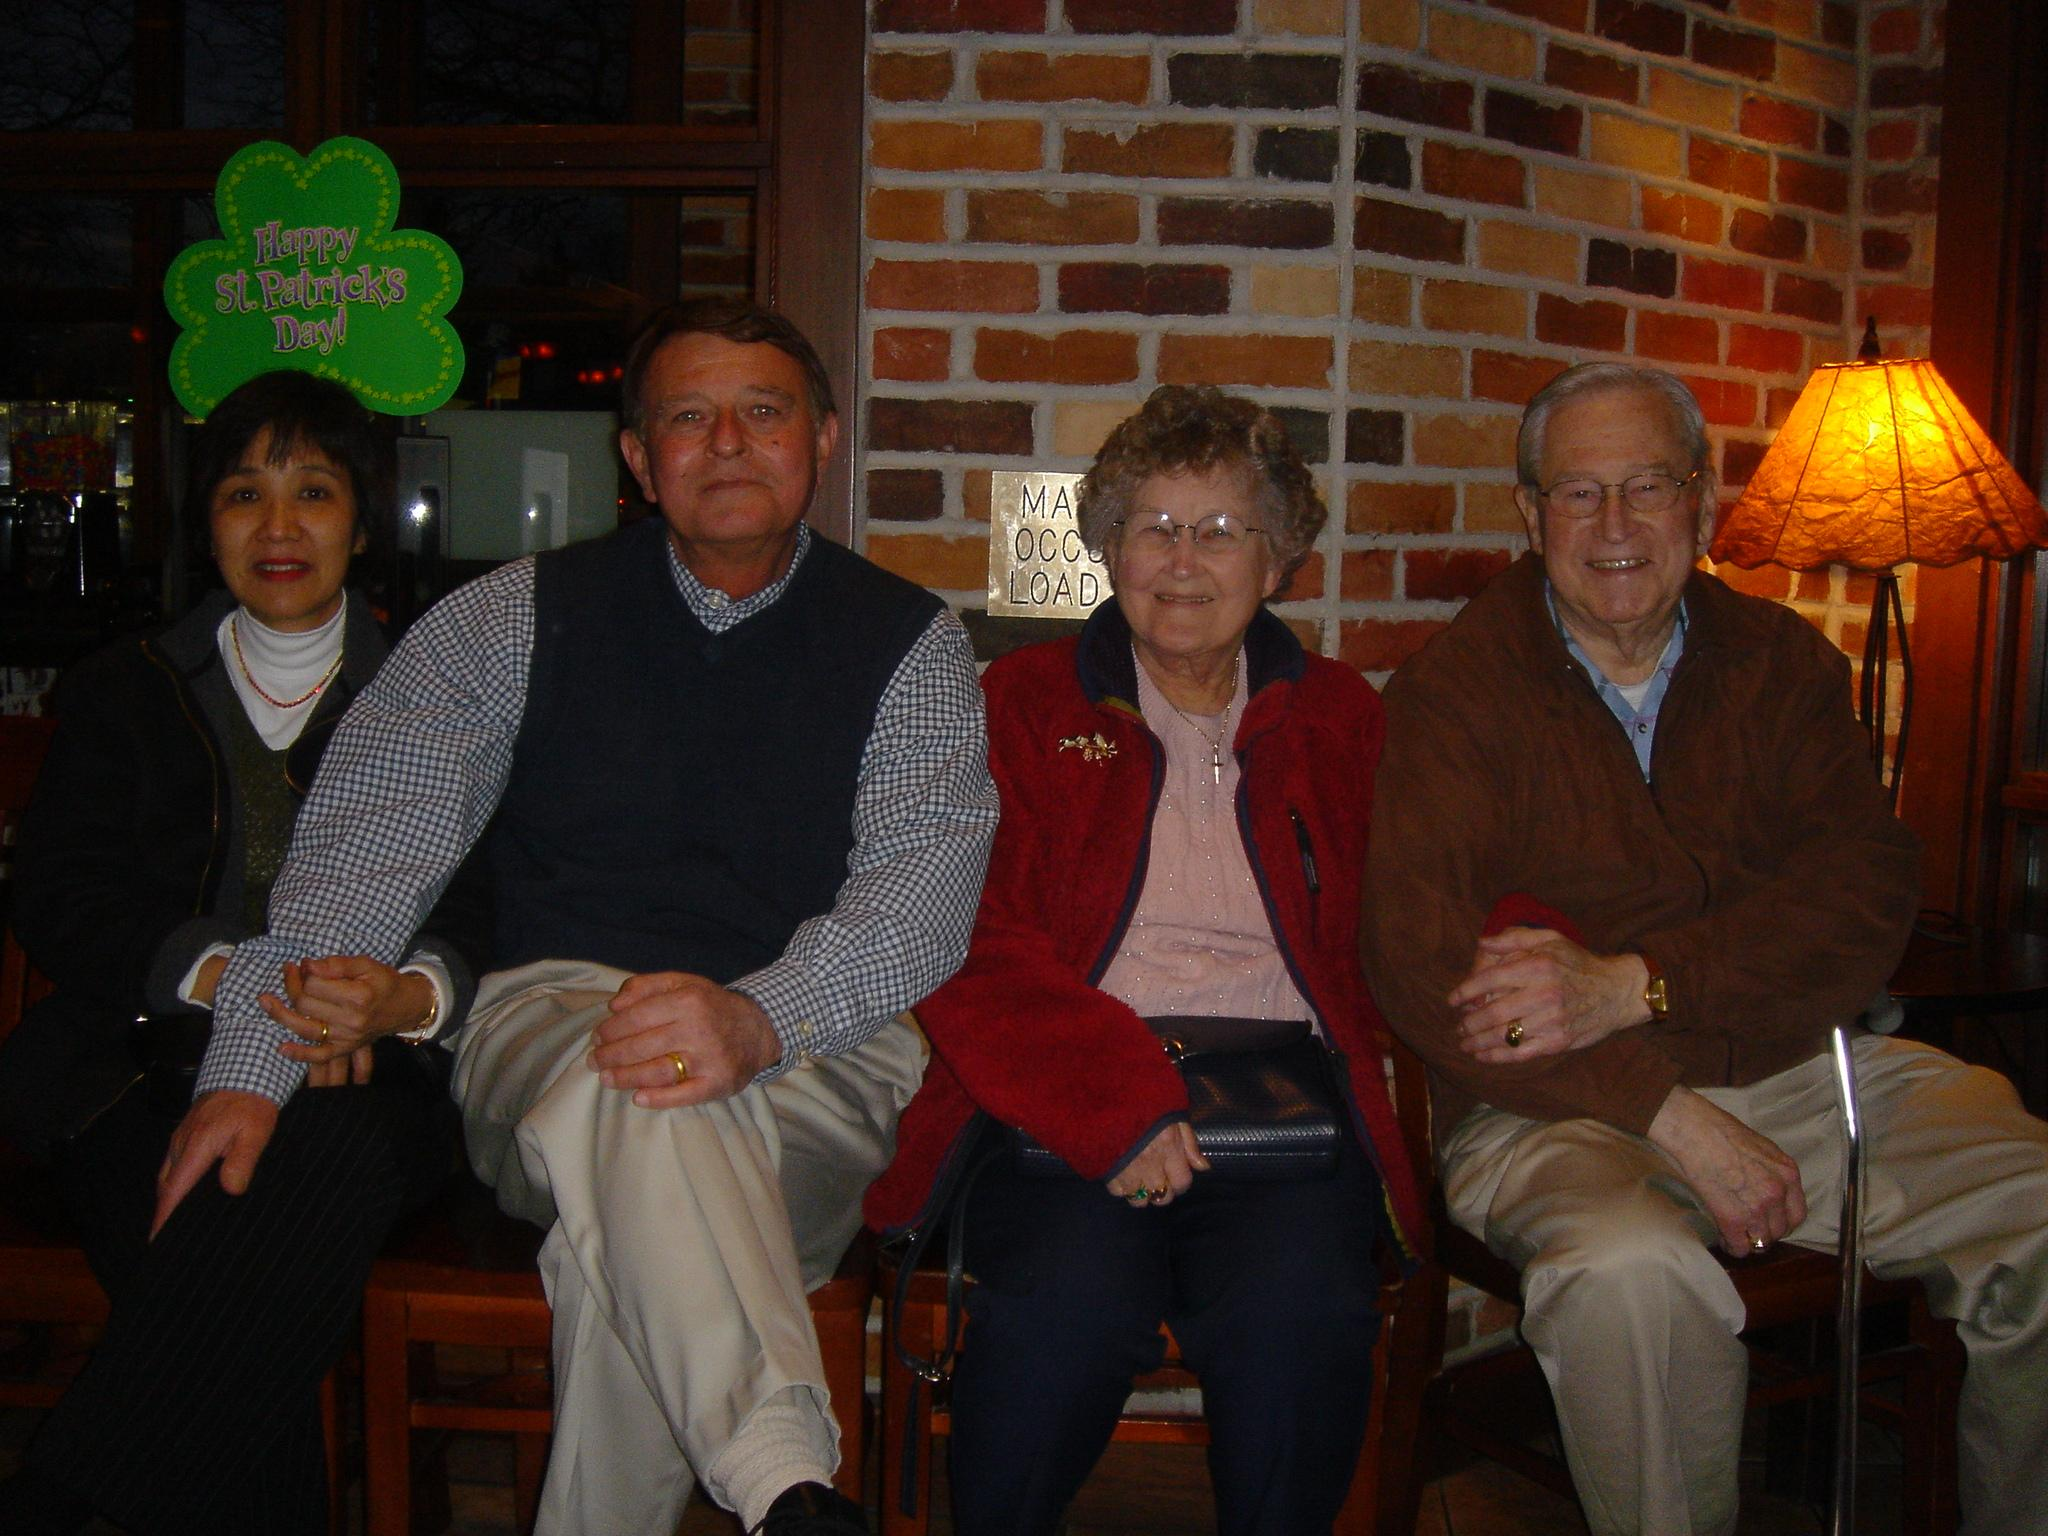 June and family 15 March 2005